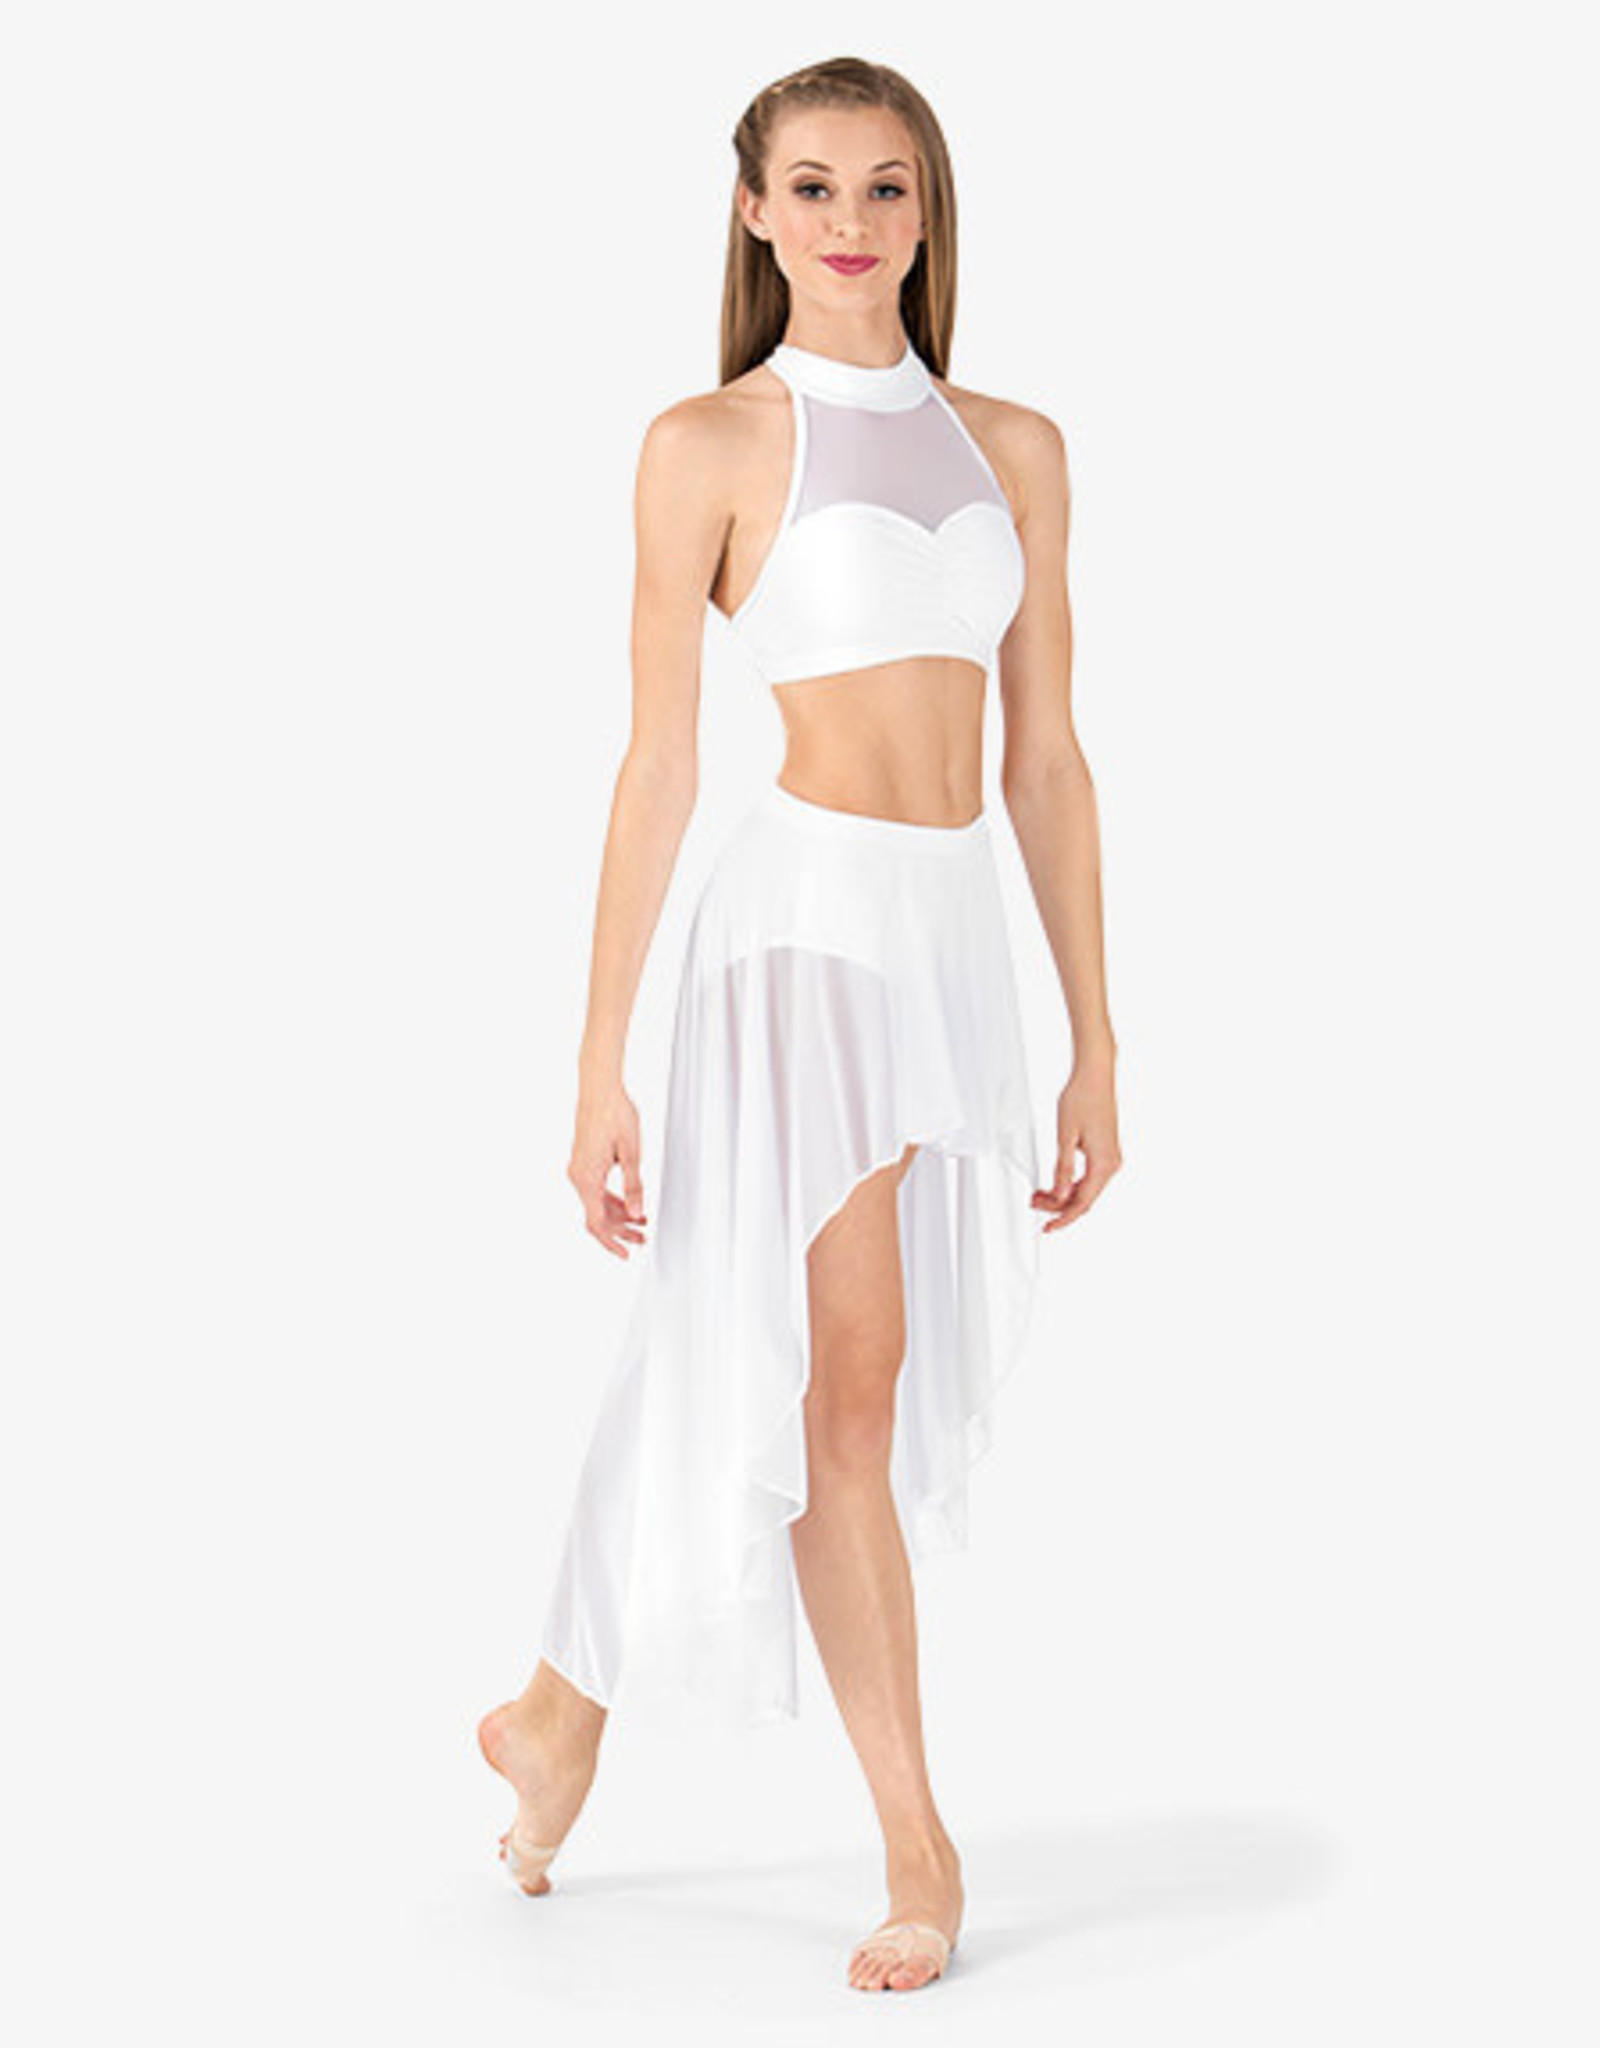 Body Wrappers Body Wrappers Crop Top With Mesh On Back BWP9027